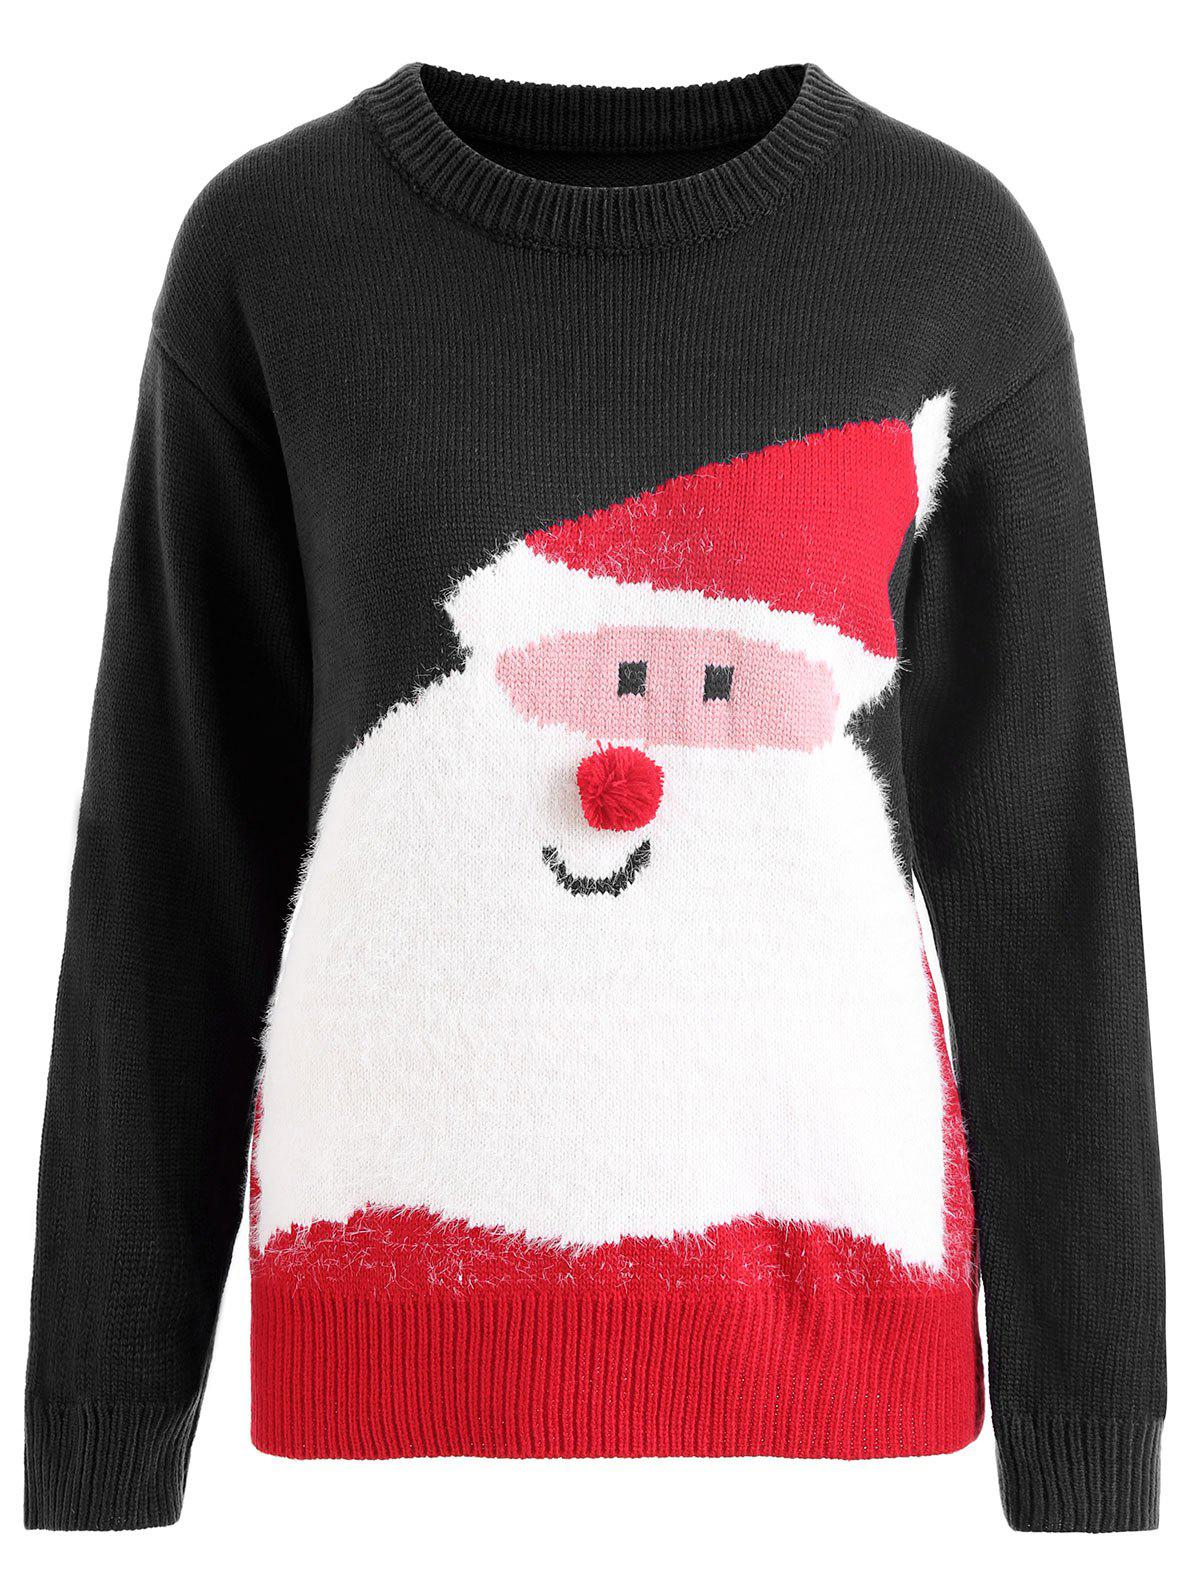 Plus Size Pom Christmas Santa Claus Sweater - BLACK ONE SIZE